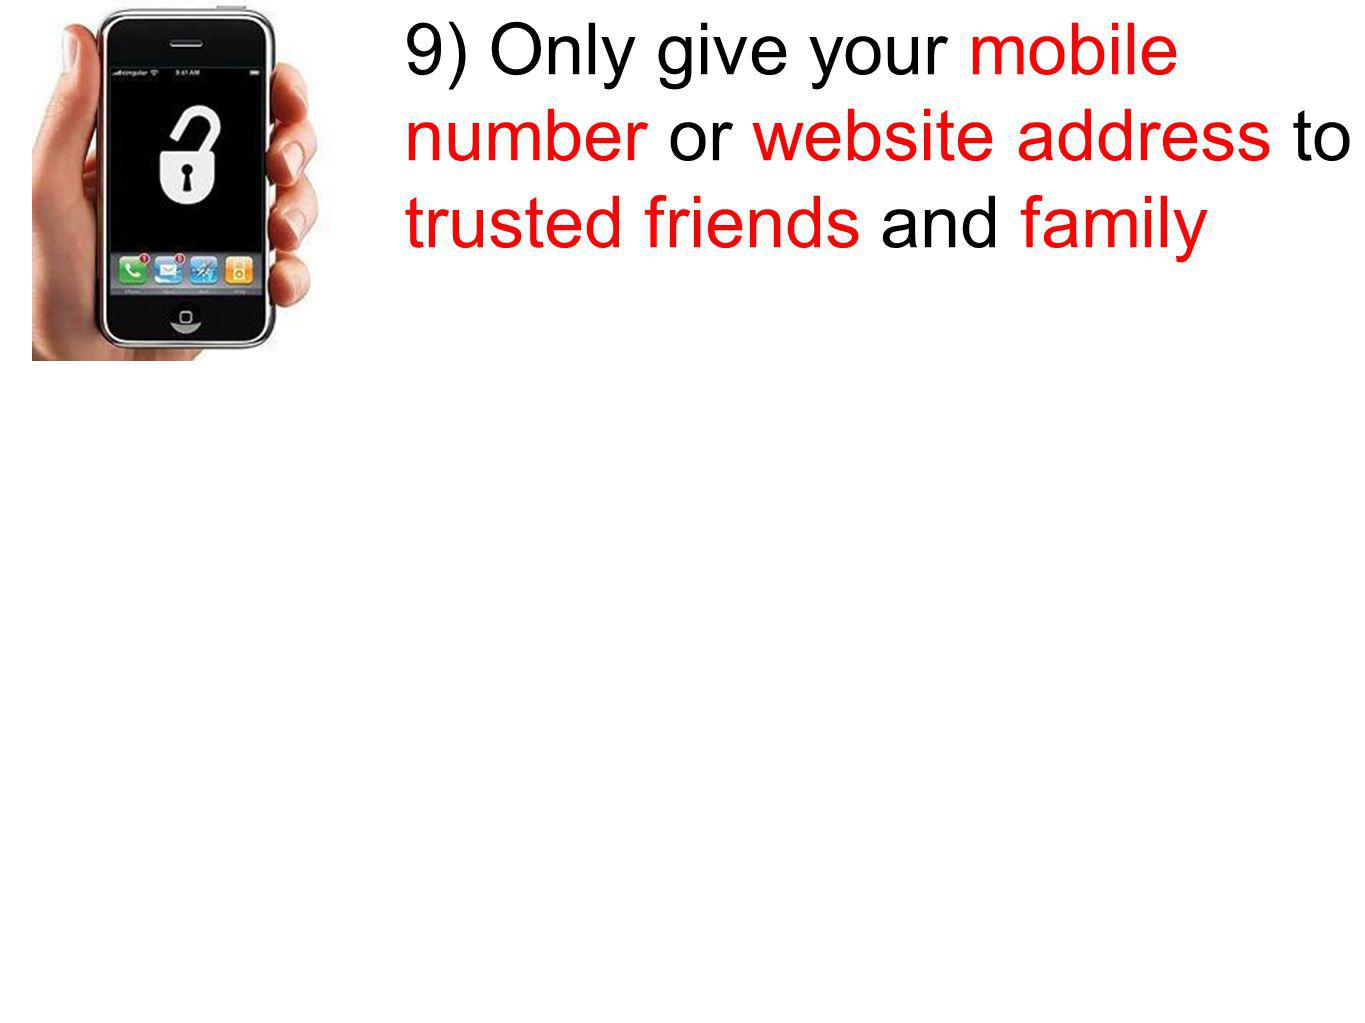 9) Only give your mobile number or website address to trusted friends and family